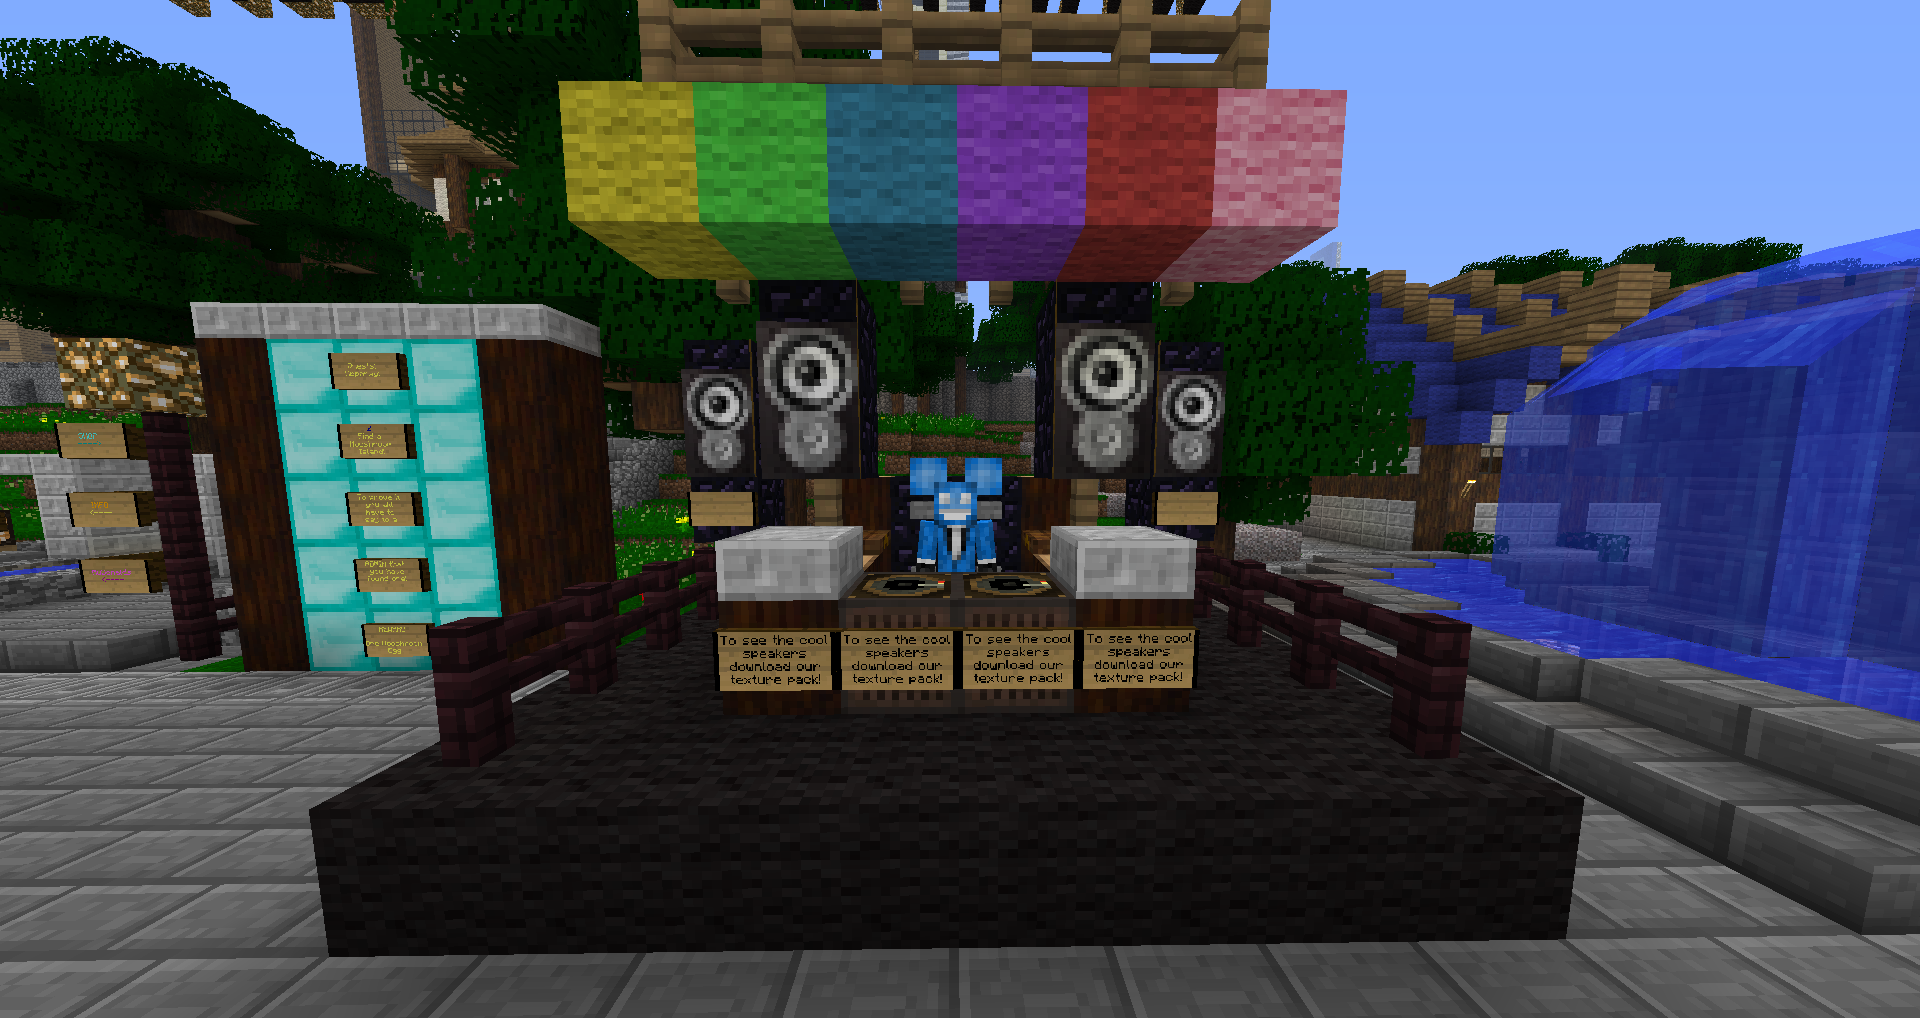 A picture showing a DJ performing from the minecraft server MuCraft 2012